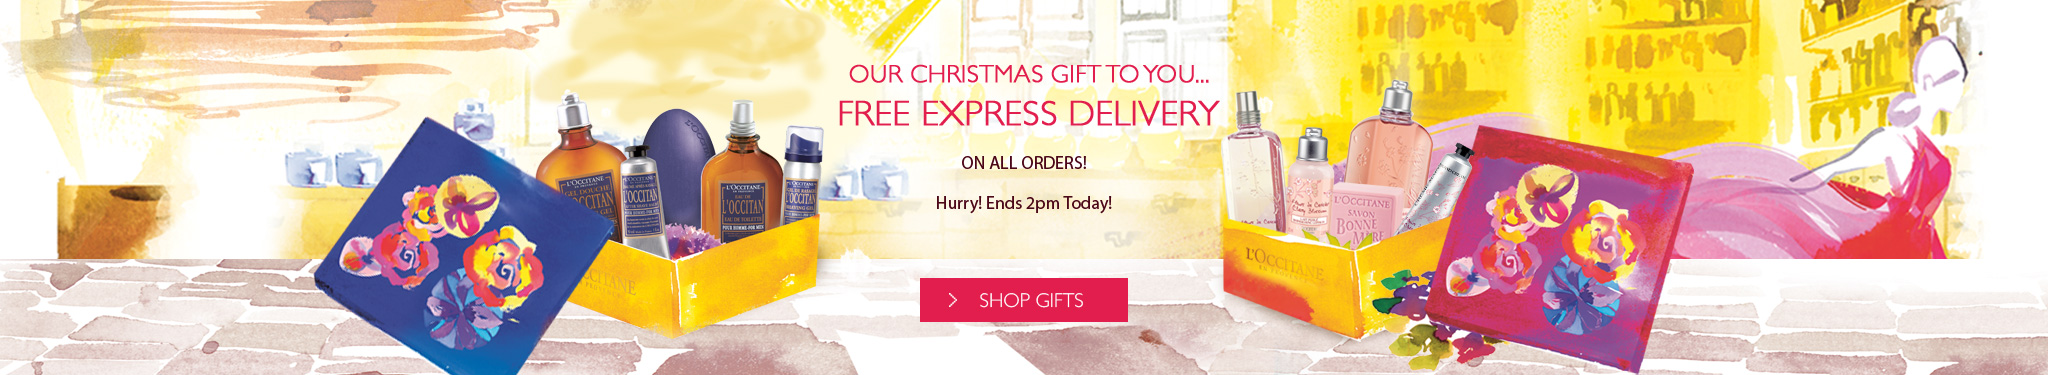 Free Express Ends Today